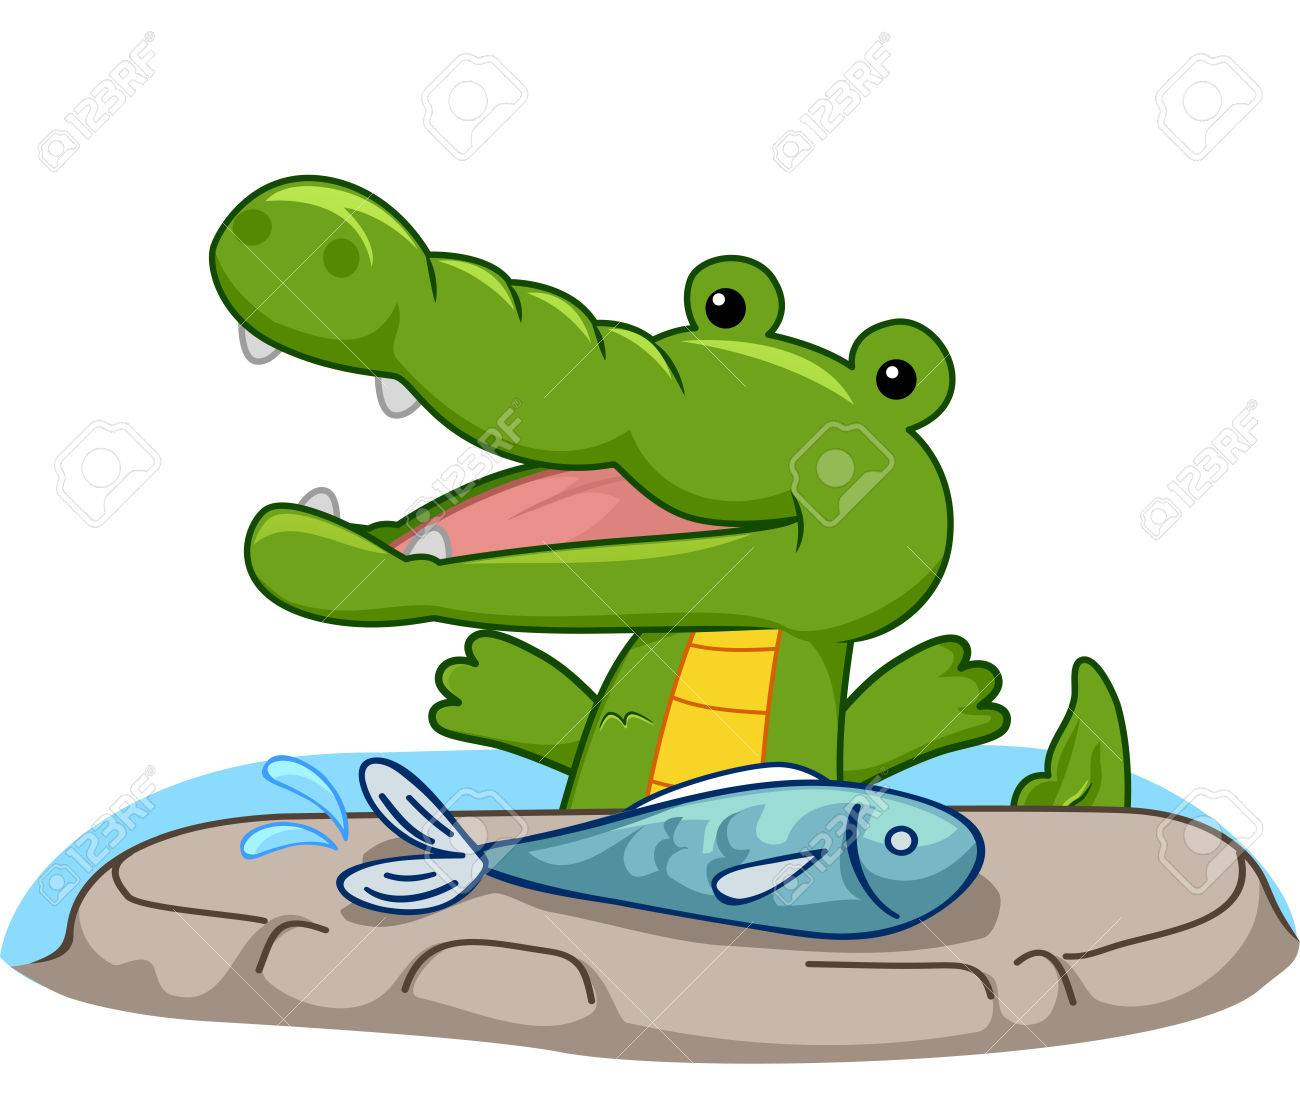 Freshwater fish to eat - Illustration Mascot Illustration Of A Hungry Crocodile Preparing To Eat A Freshwater Fish